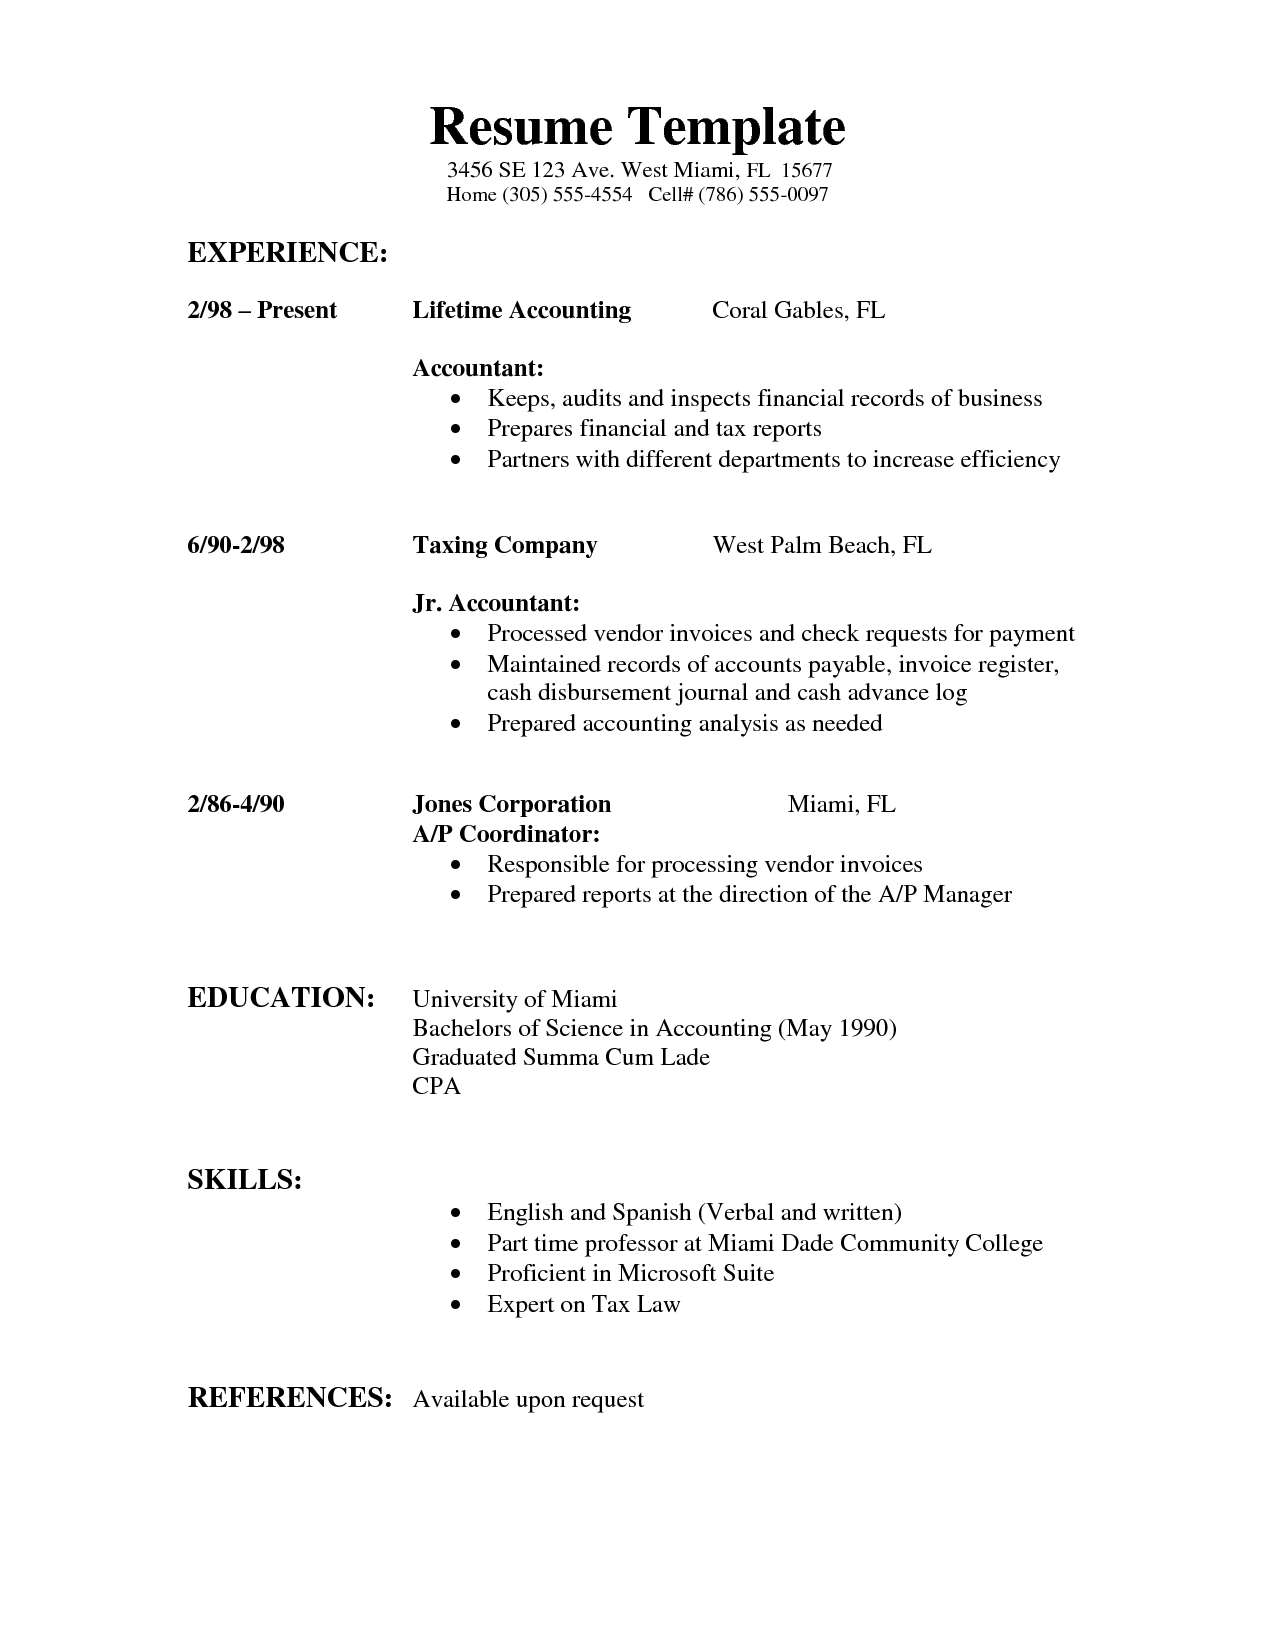 best resumes templates sample customer service resume best resumes templates 2012 the best resume templates for 2016 cover letters and resume examples 3